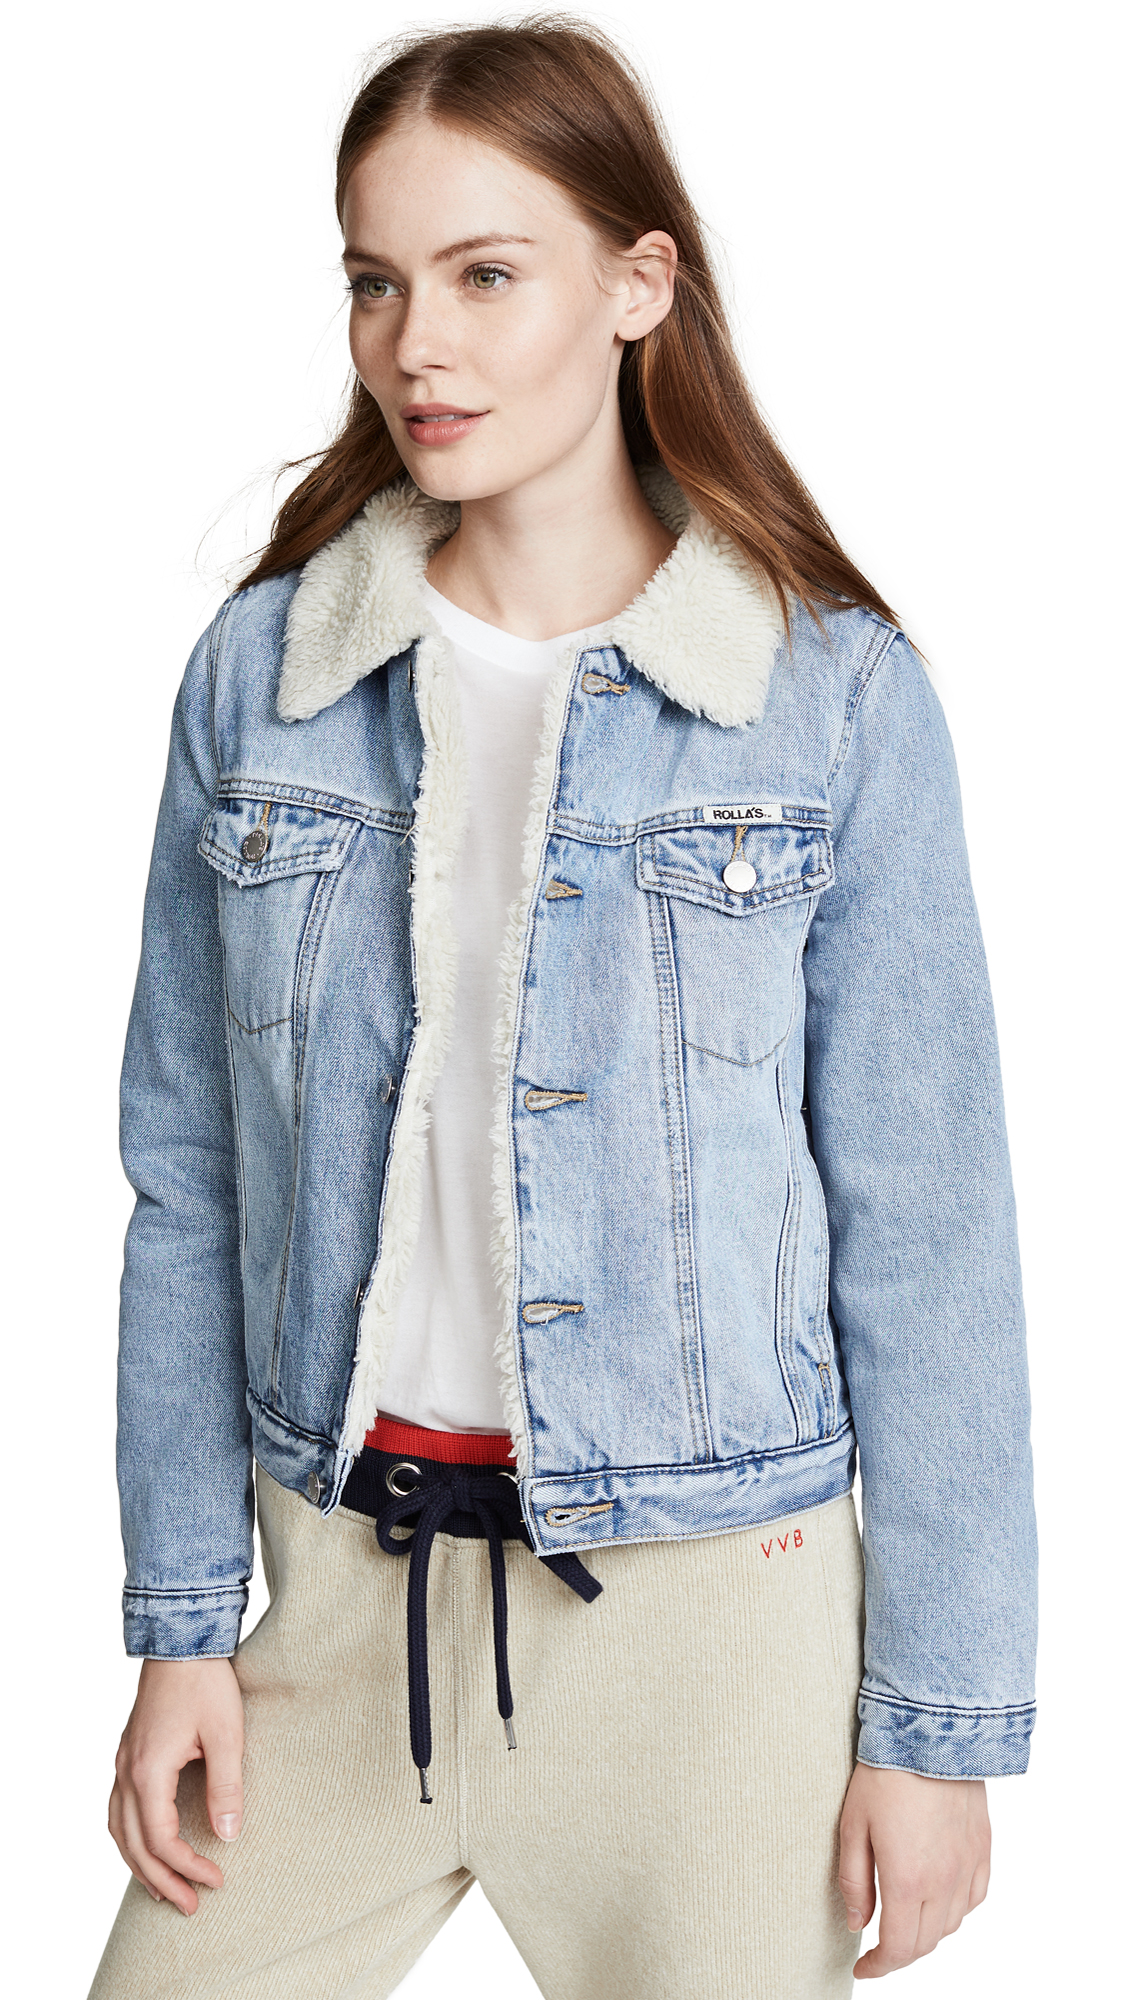 Rolla's Sherpa Jacket In Stella Blue